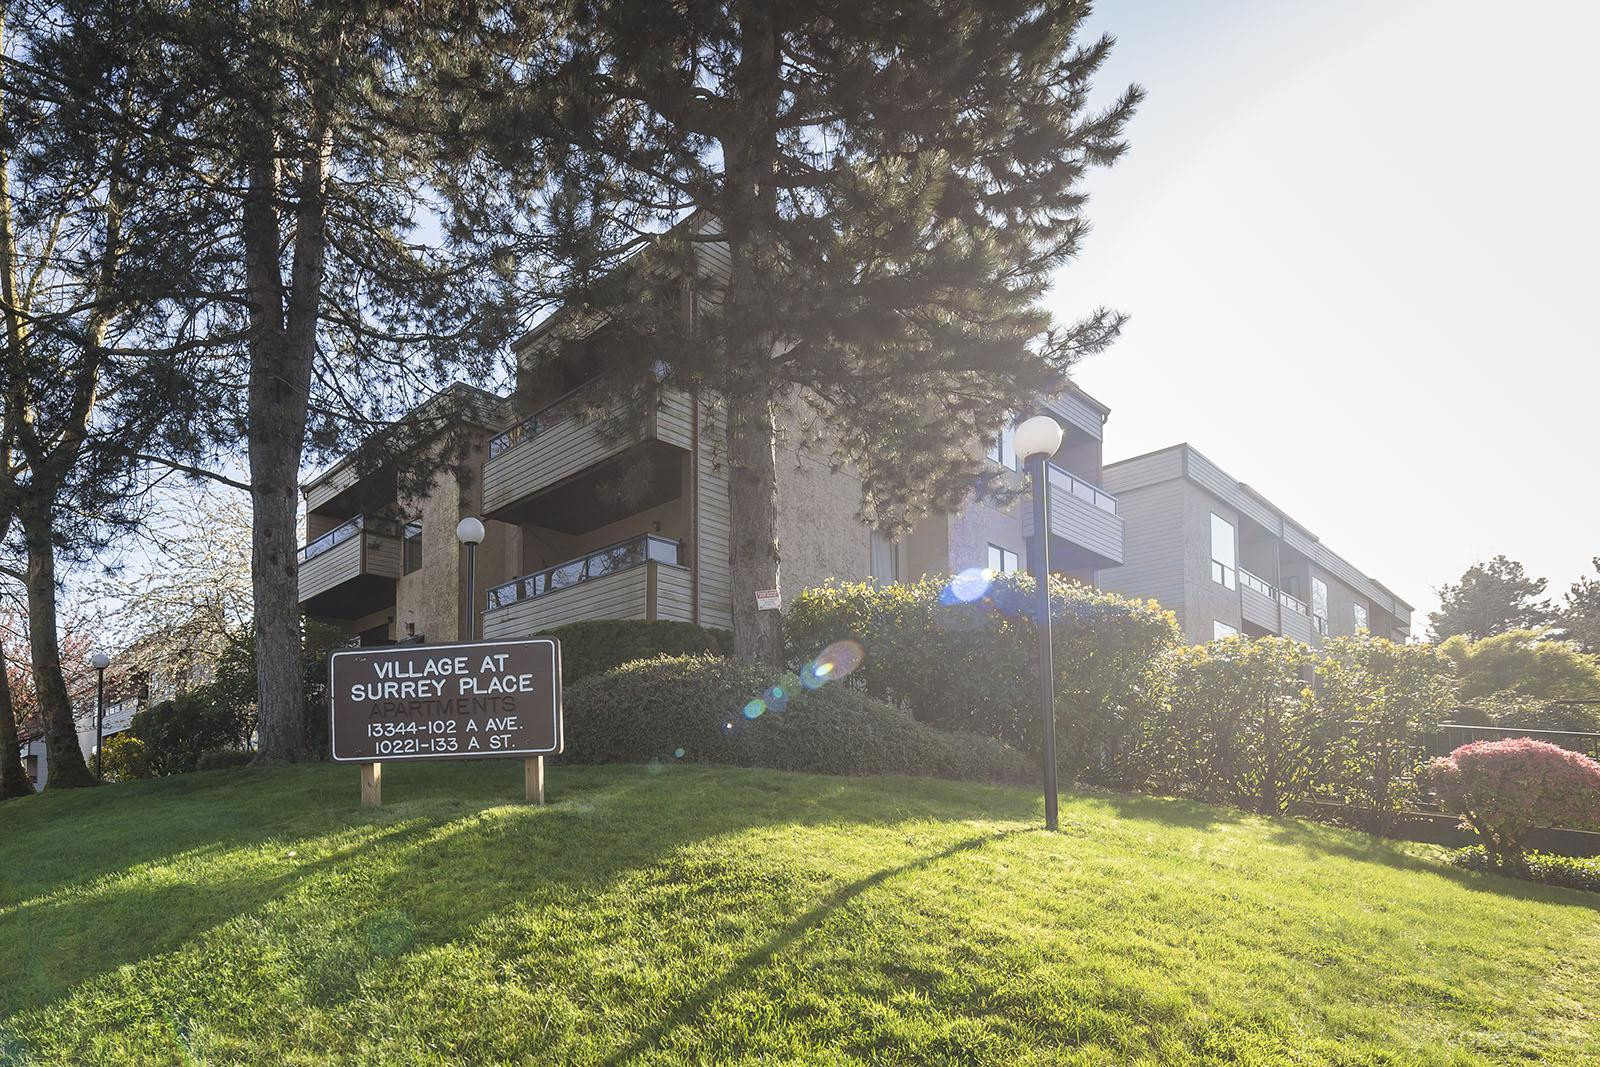 Surrey Place at 13338 102a Ave, Surrey 1